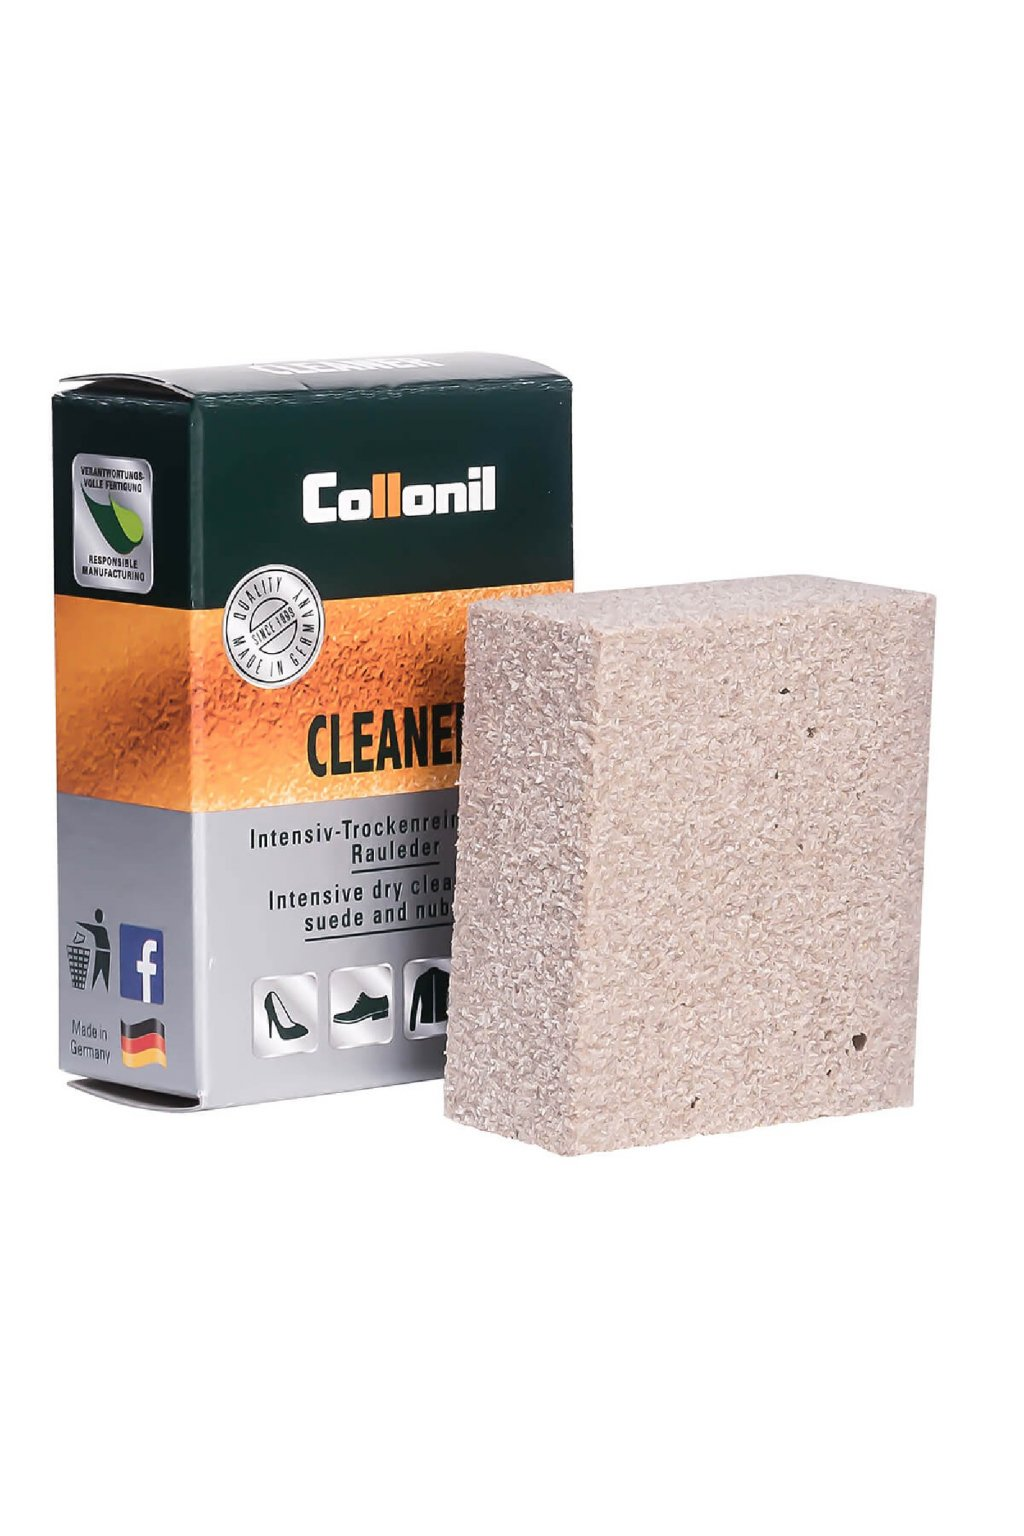 Collonil Cleaner classic box